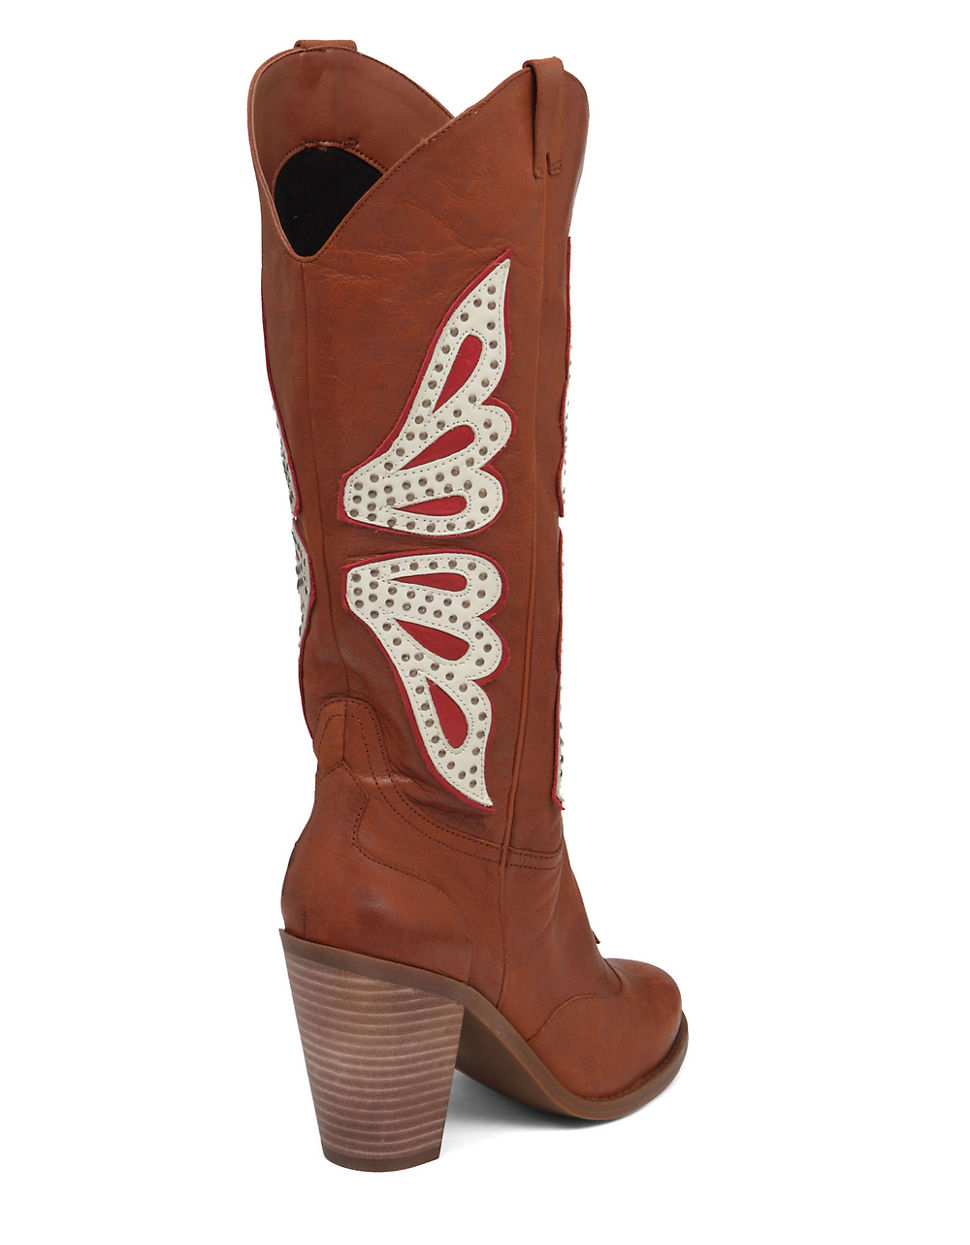 a0bb737b7b1 Jessica Simpson Caralee Leather Cowgirl Boots in Brown - Lyst